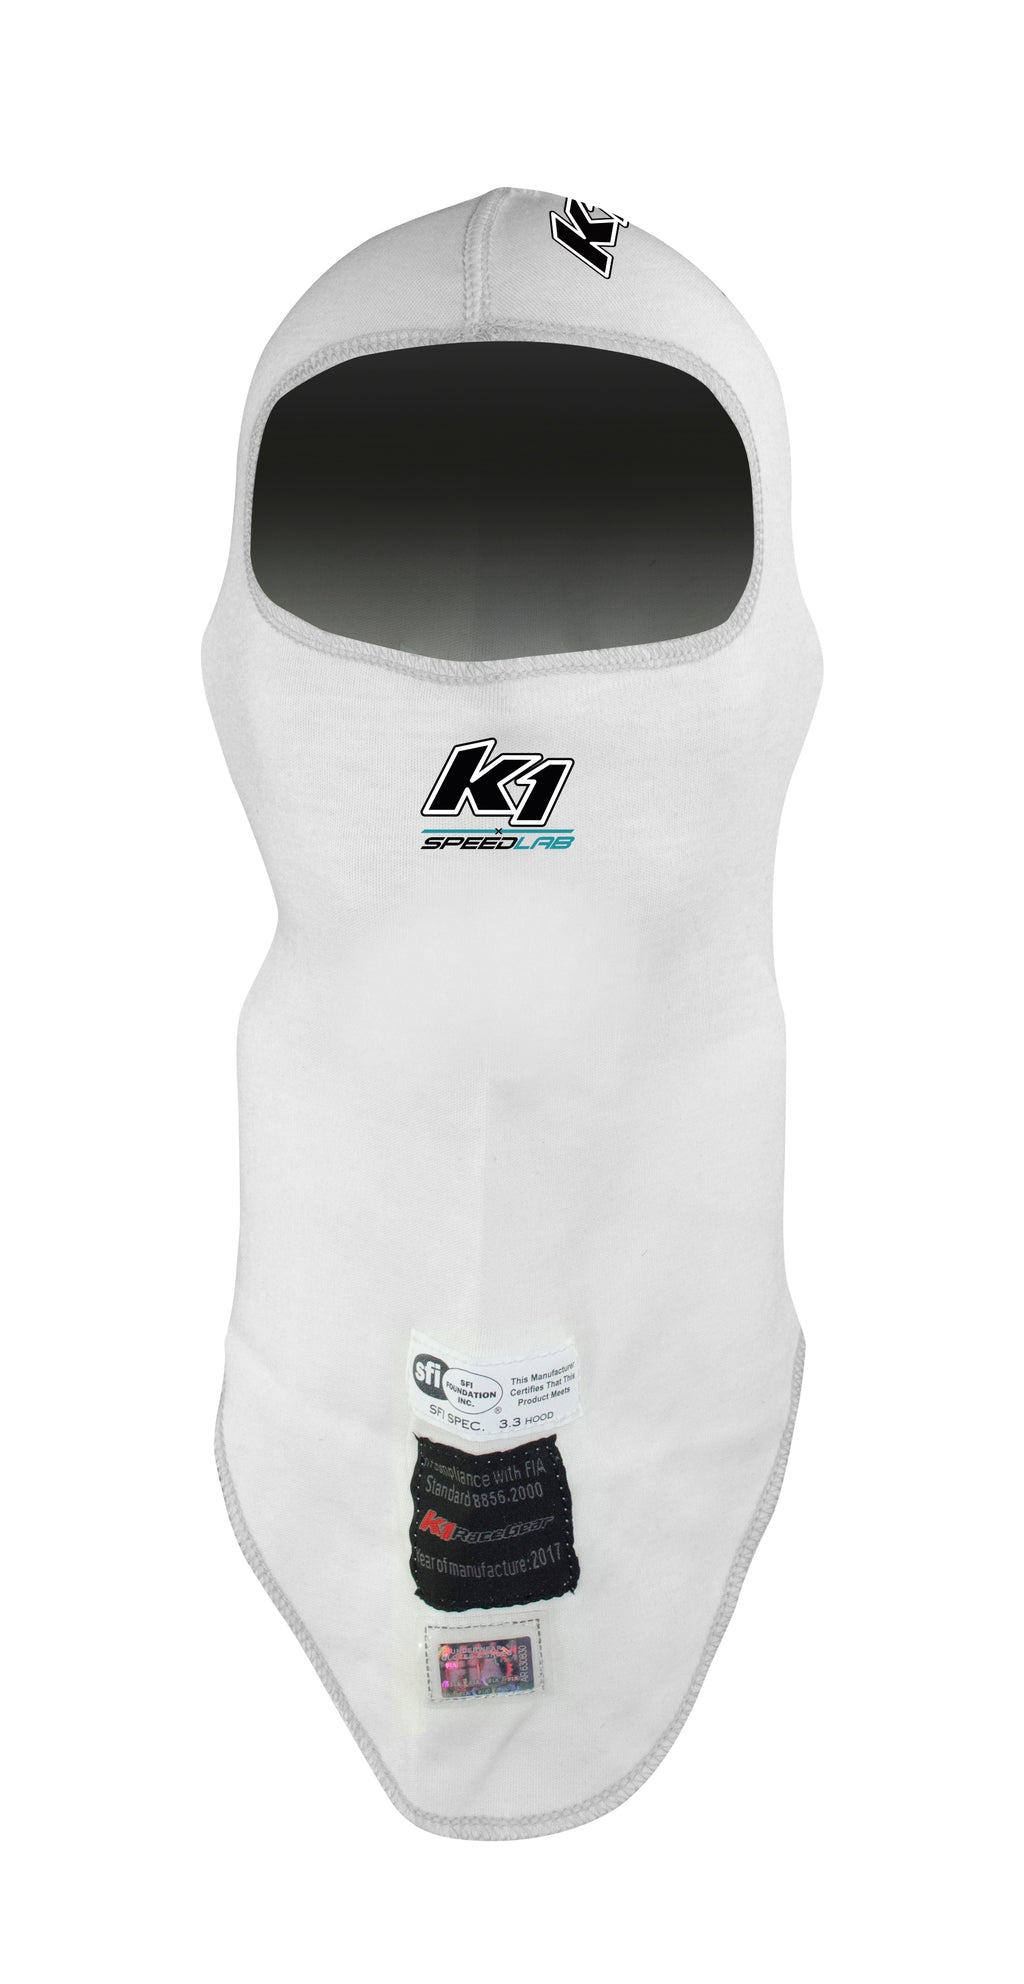 SpeedLab x K1 Flex Series Nomex Headsock